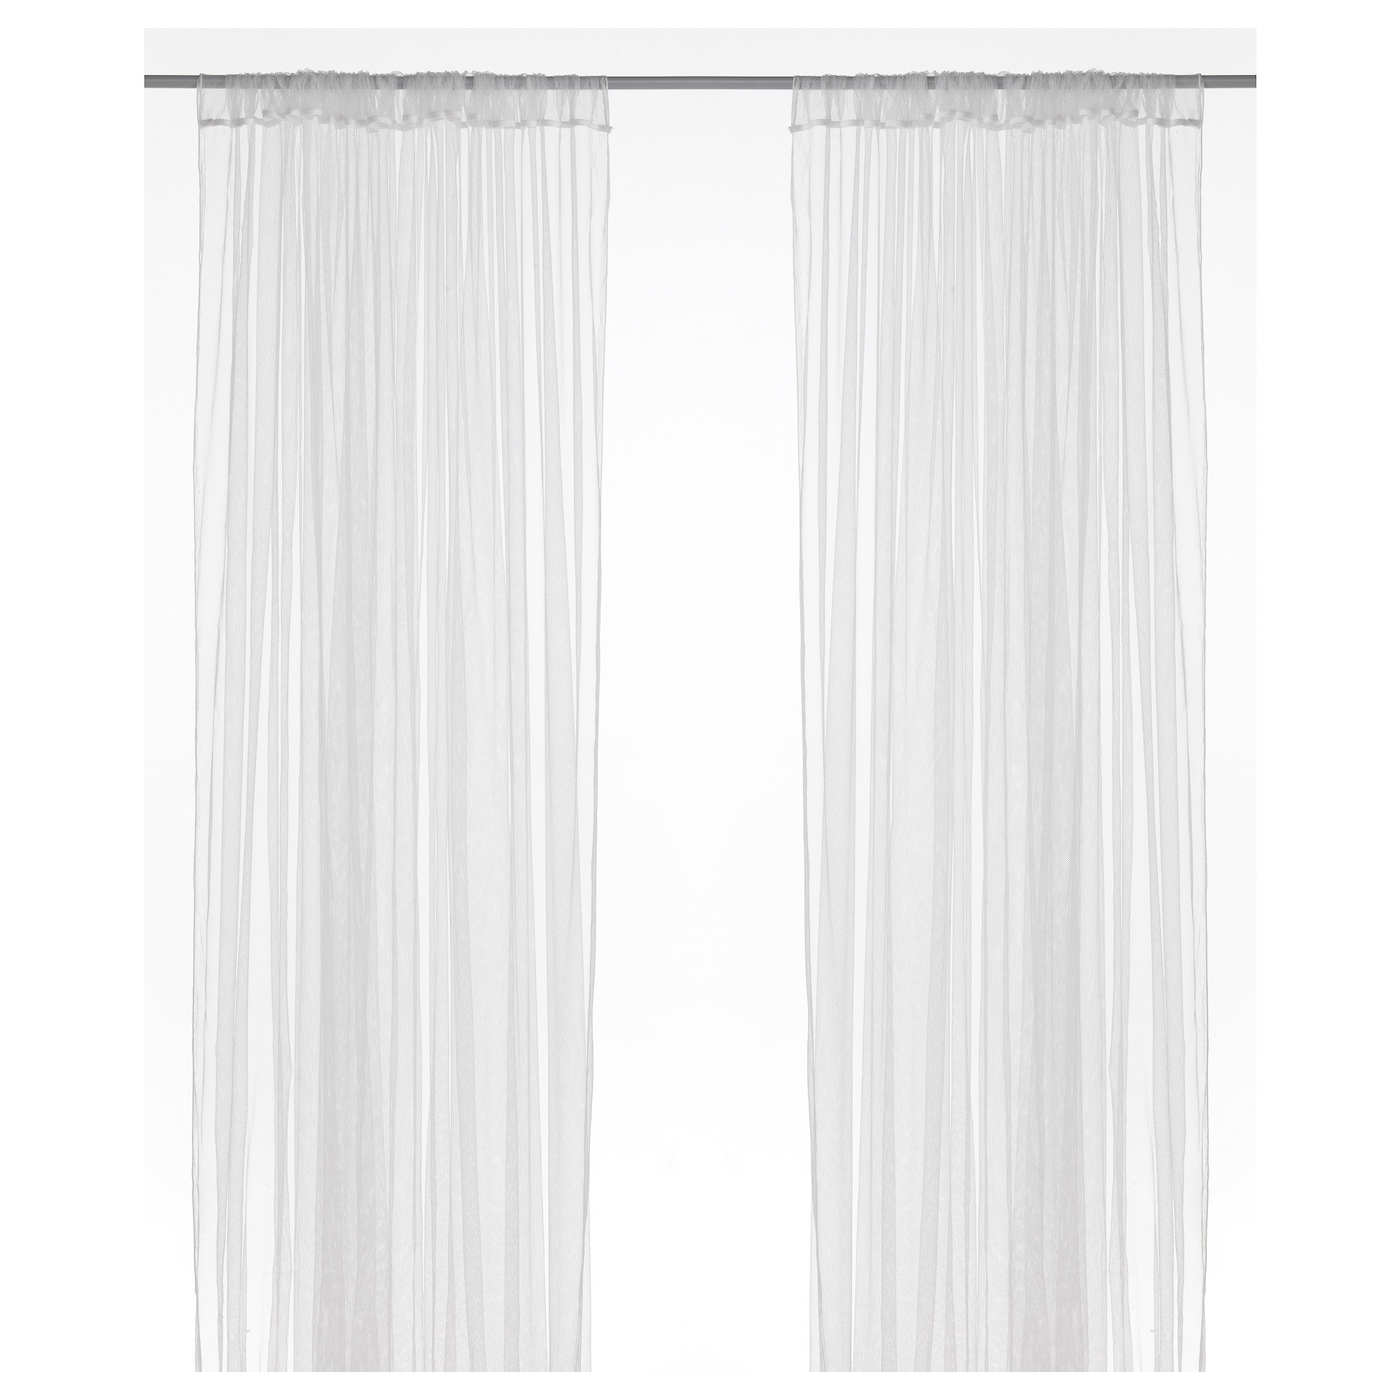 lill net curtains 1 pair white 280 x 250 cm ikea ForWhite Curtains Ikea